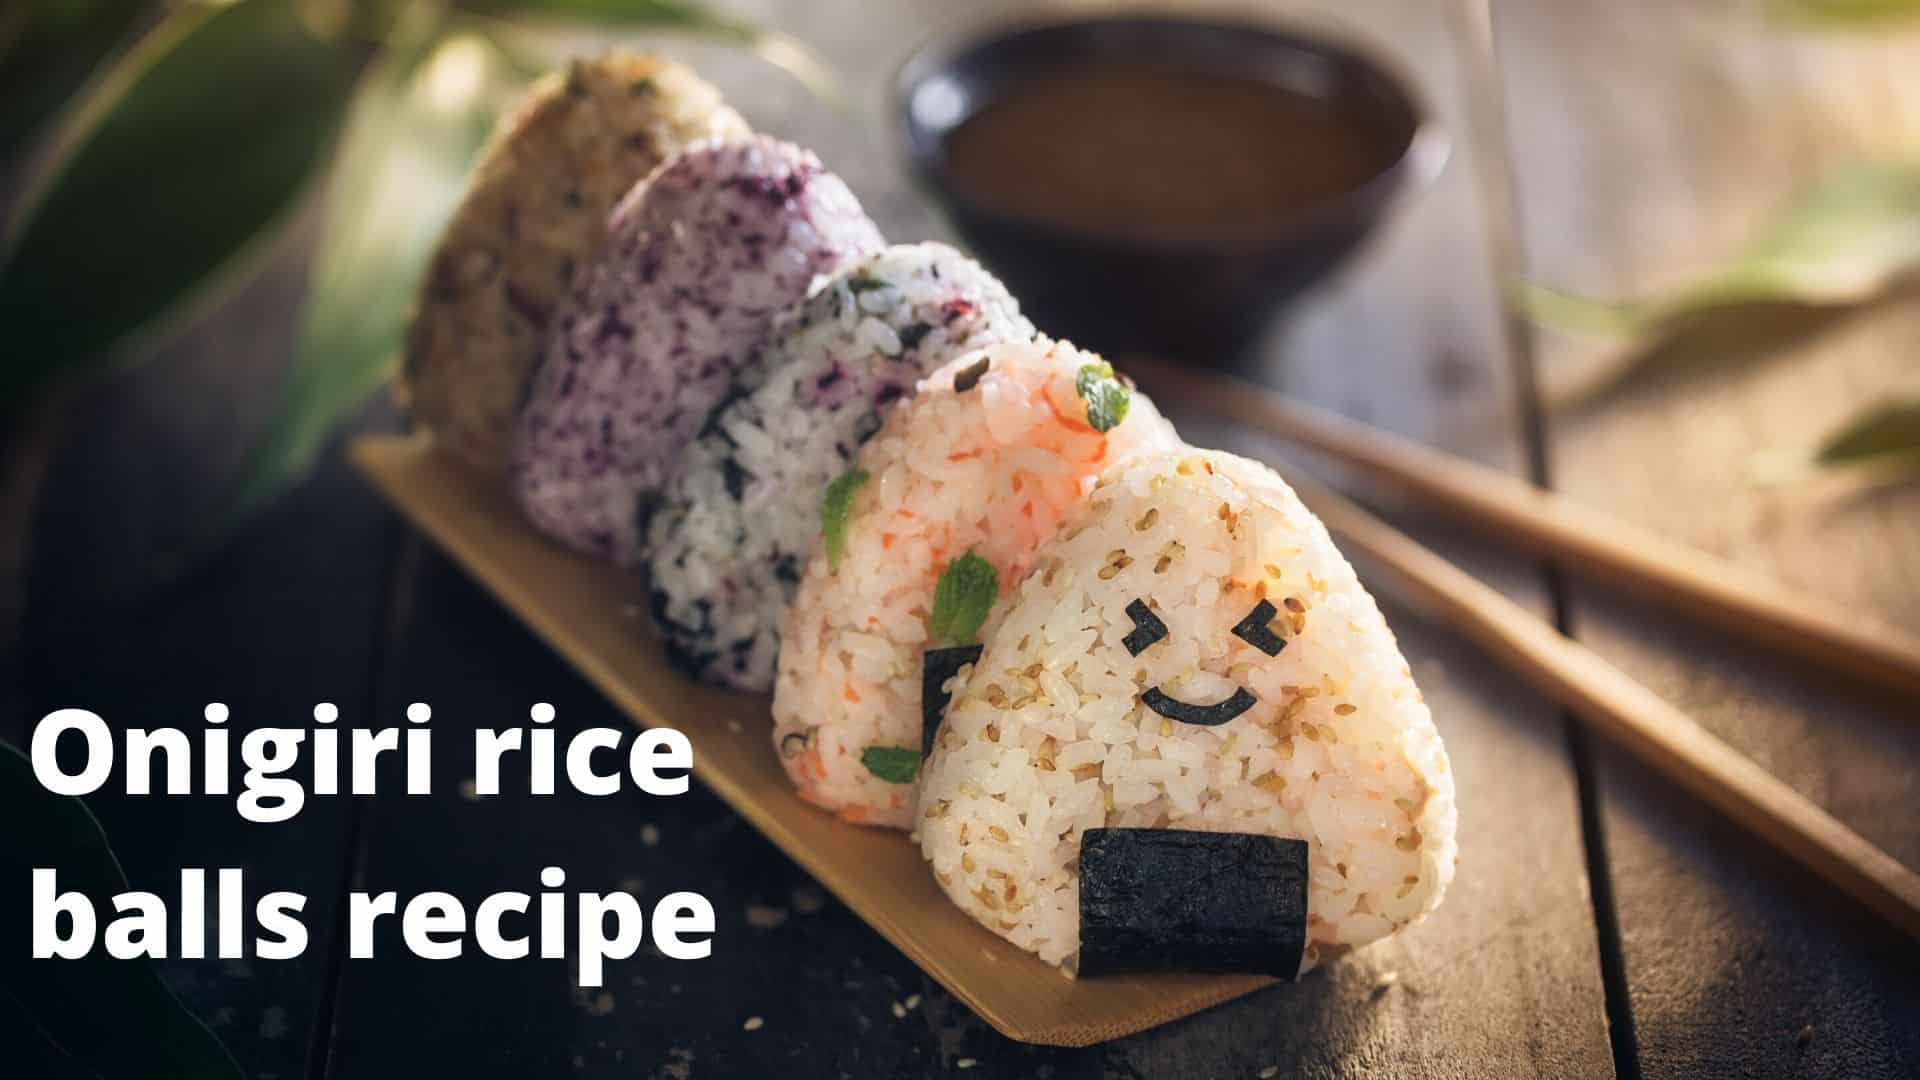 Onigiri rice balls recipe